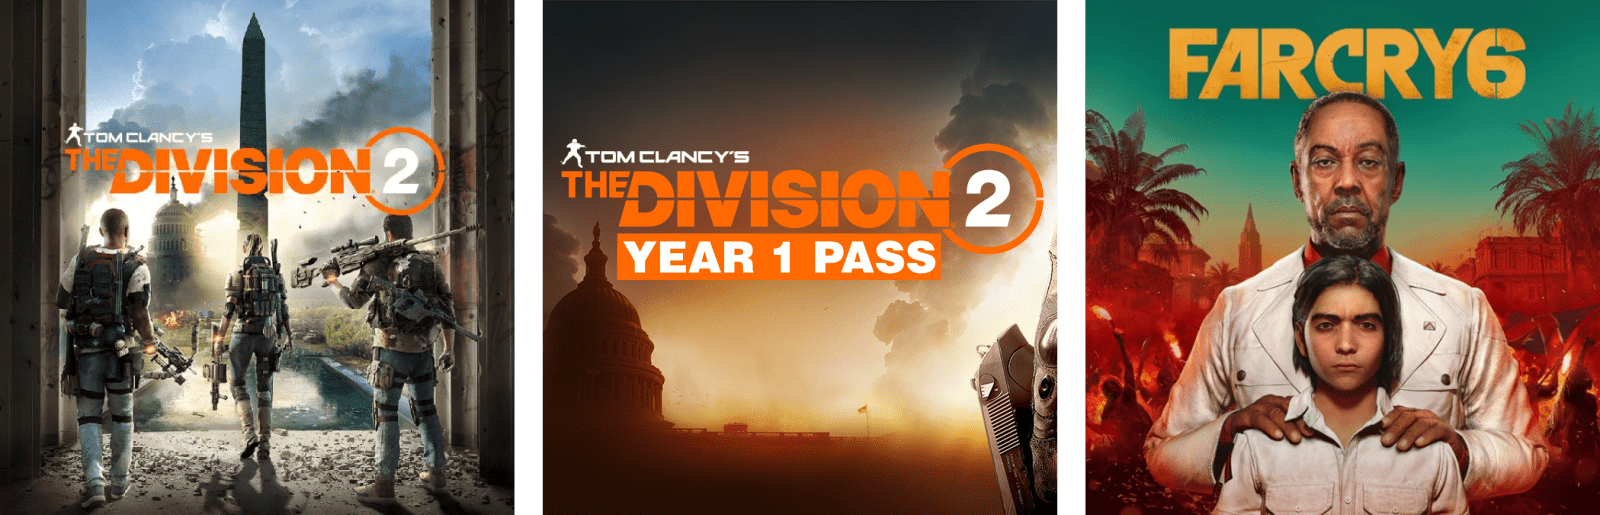 Tom Clancy's The Division 2 The Division 2 Year 1 Pass Far Cry 6